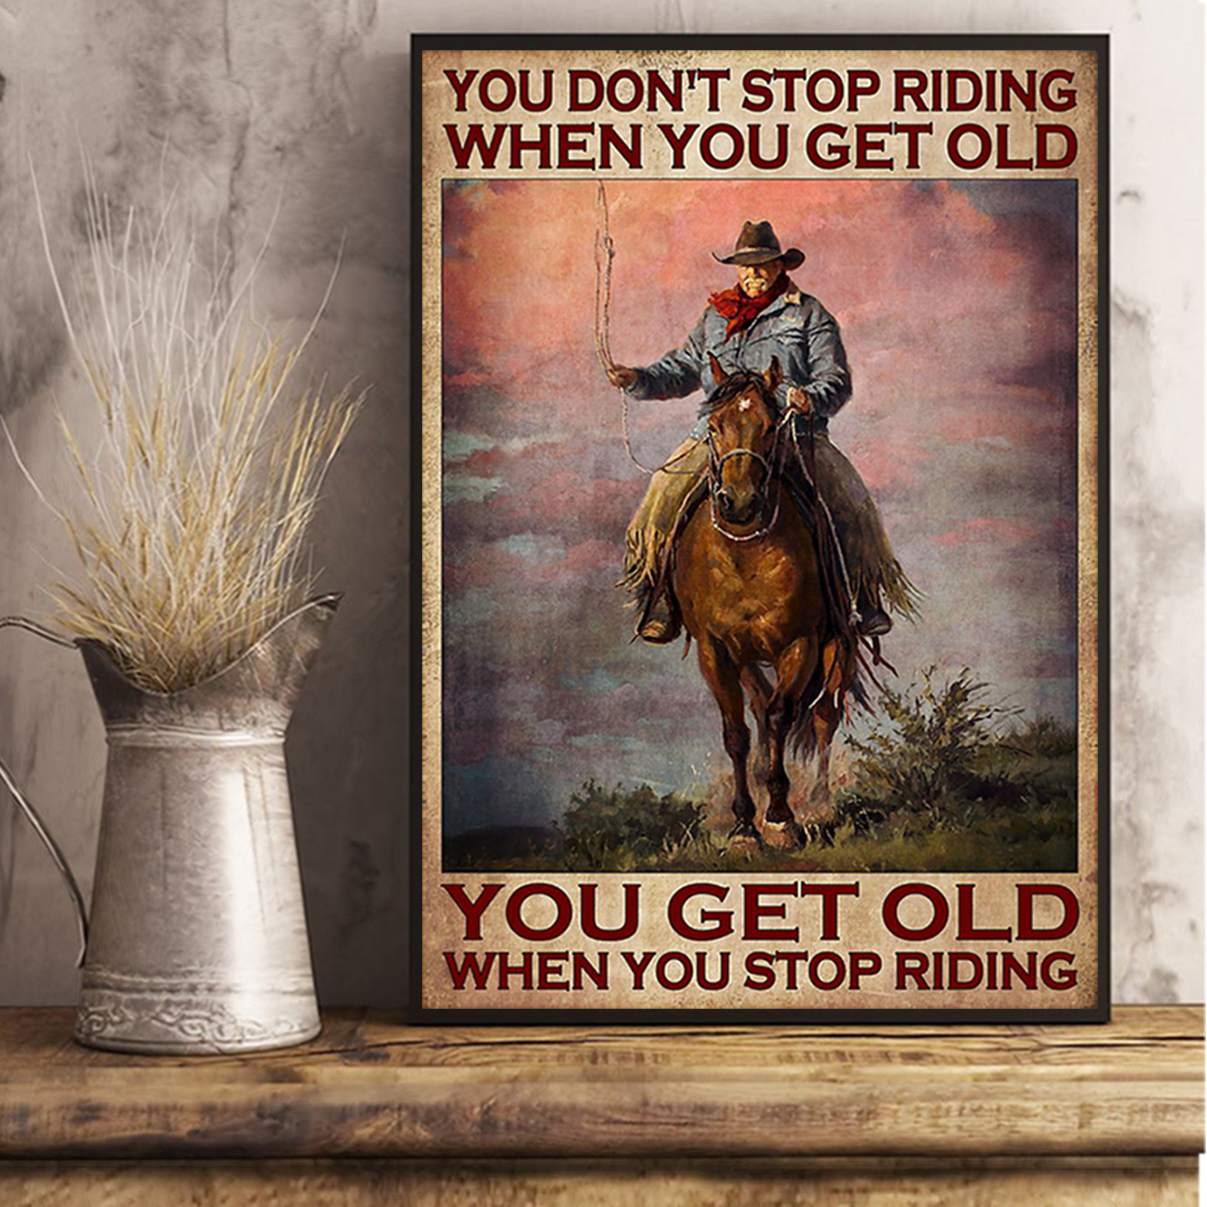 Old man cowboy you don't stop riding when you get old poster A3